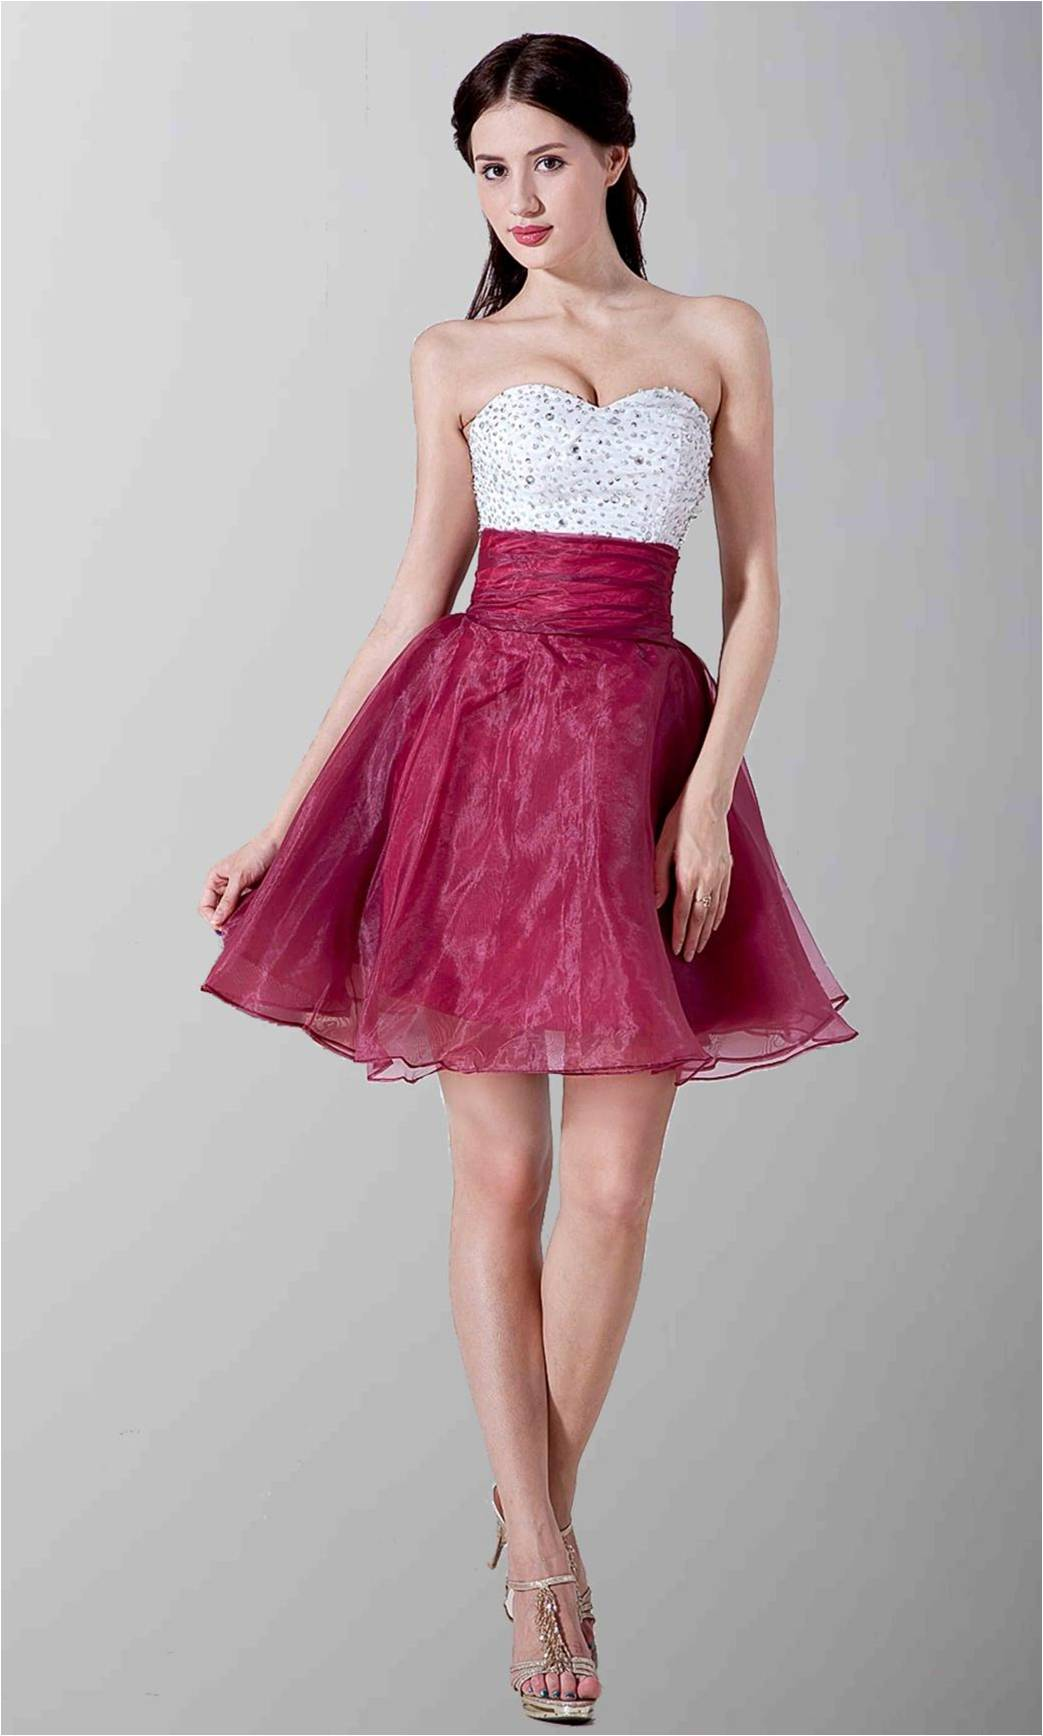 Two Color Short Homecoming Prom Dresses Sequin Bodice KSP262 [KSP262] - £88.00 : Cheap Prom Dresses Uk, Bridesmaid Dresses, 2014 Prom & Evening Dresses, Look for cheap elegant prom dresses 2014, cocktail gowns, or dresses for special occasions? kissprom.co.uk offers various bridesmaid dresses, evening dress, free shipping to UK etc.